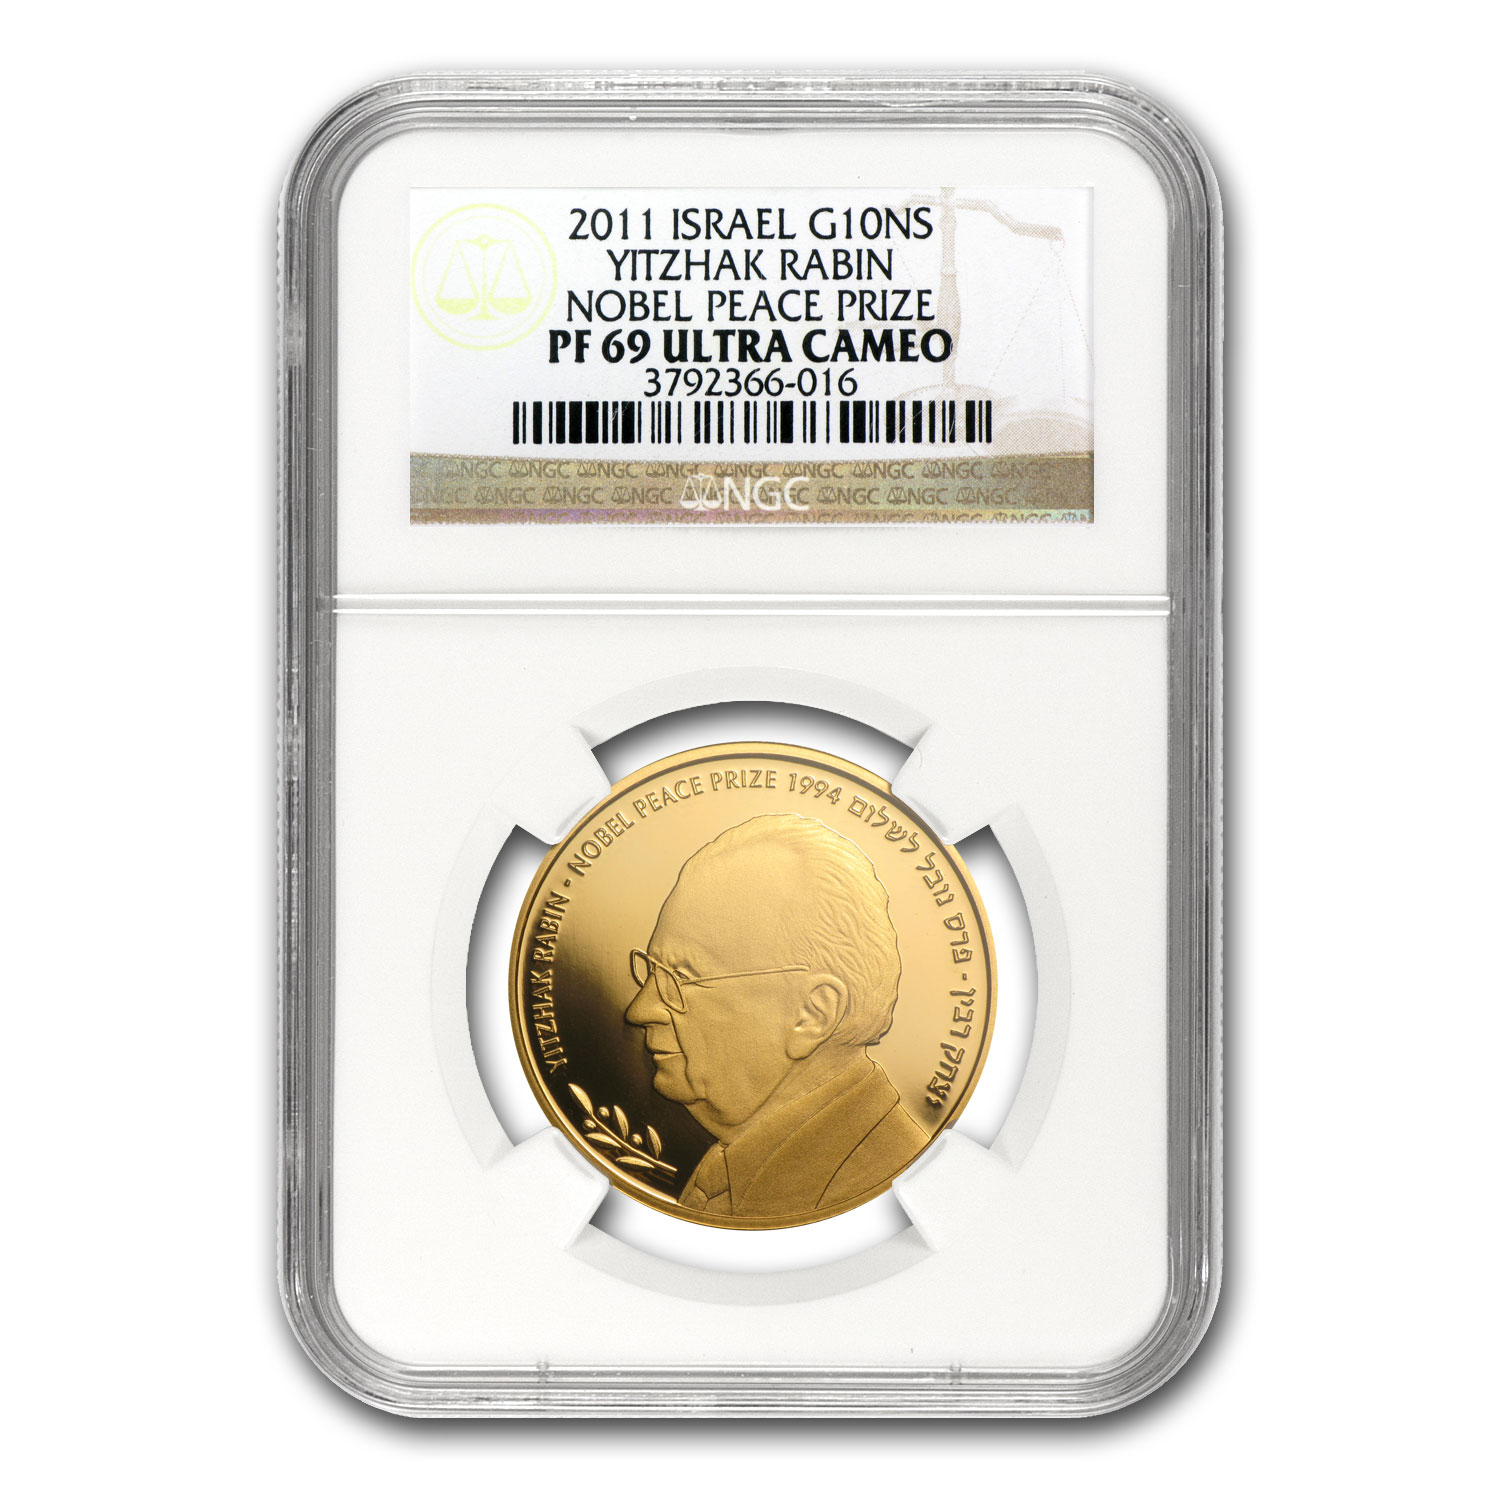 2011 Israel Yitzhak Rabin 1/2 oz Proof Gold Coin PF-69 UCAM NGC